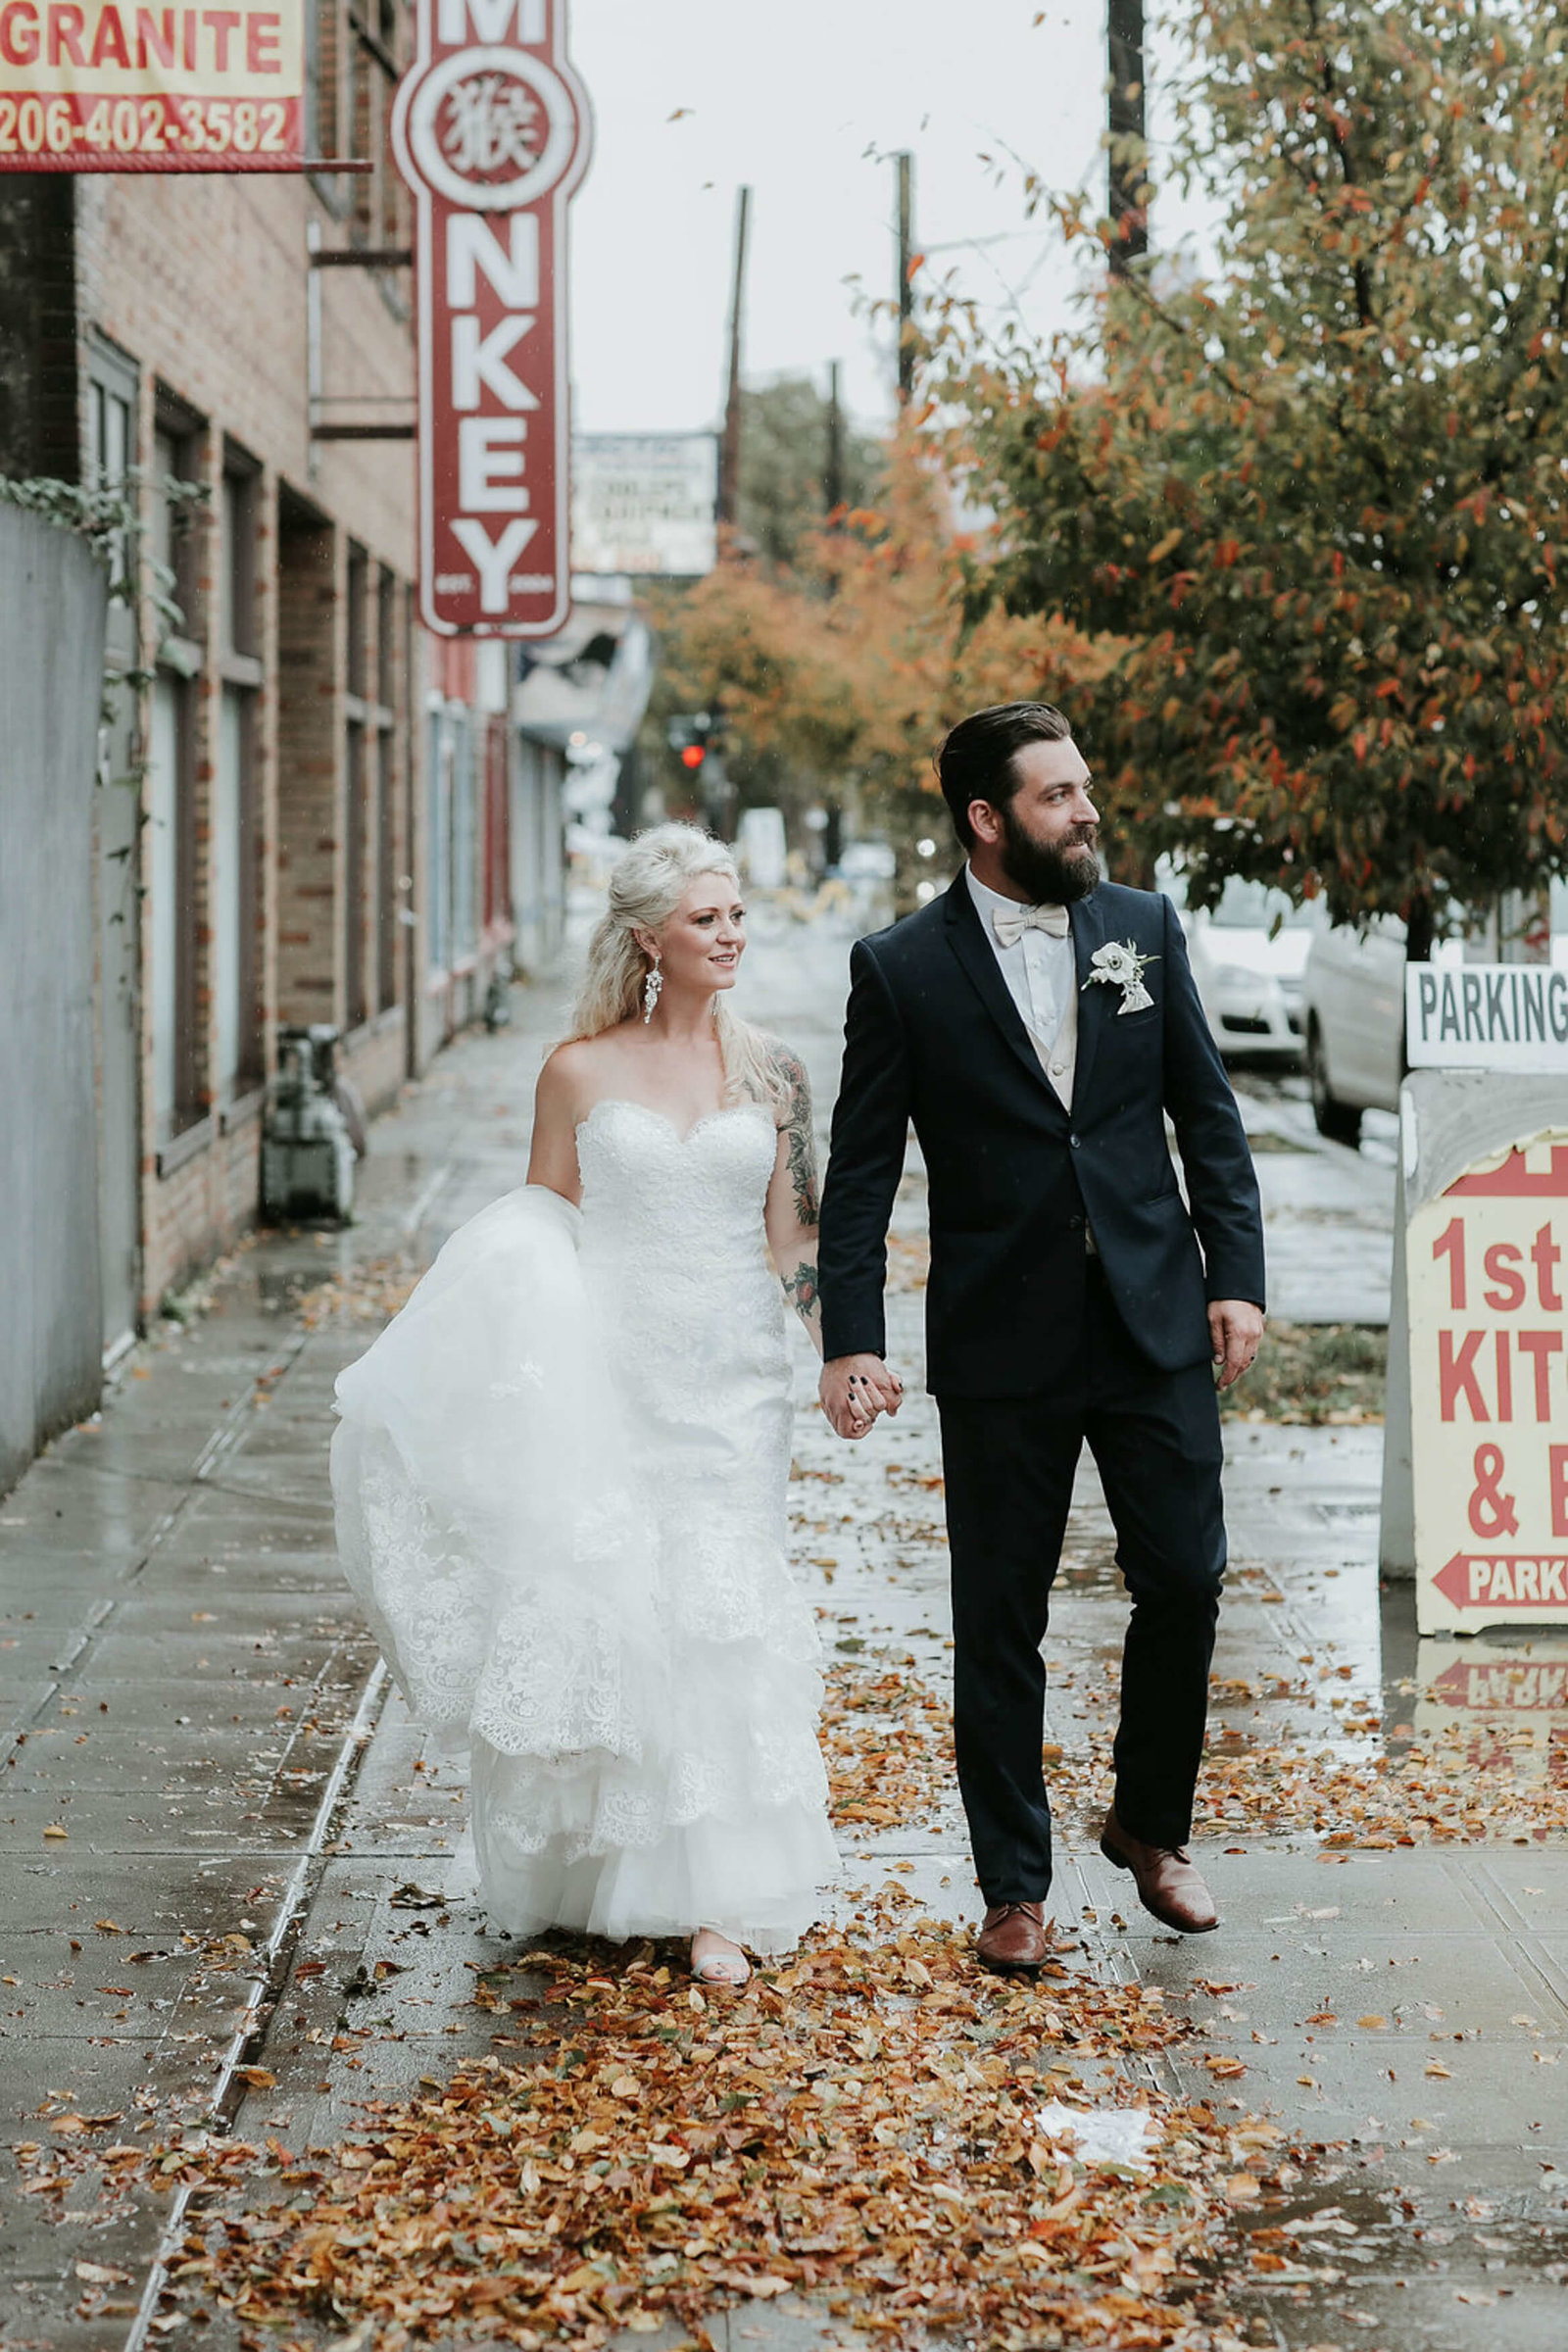 The_Big_Fake_wedding_Seattle_Within_sodo_wedding_by_Adina_Preston_Weddings_118